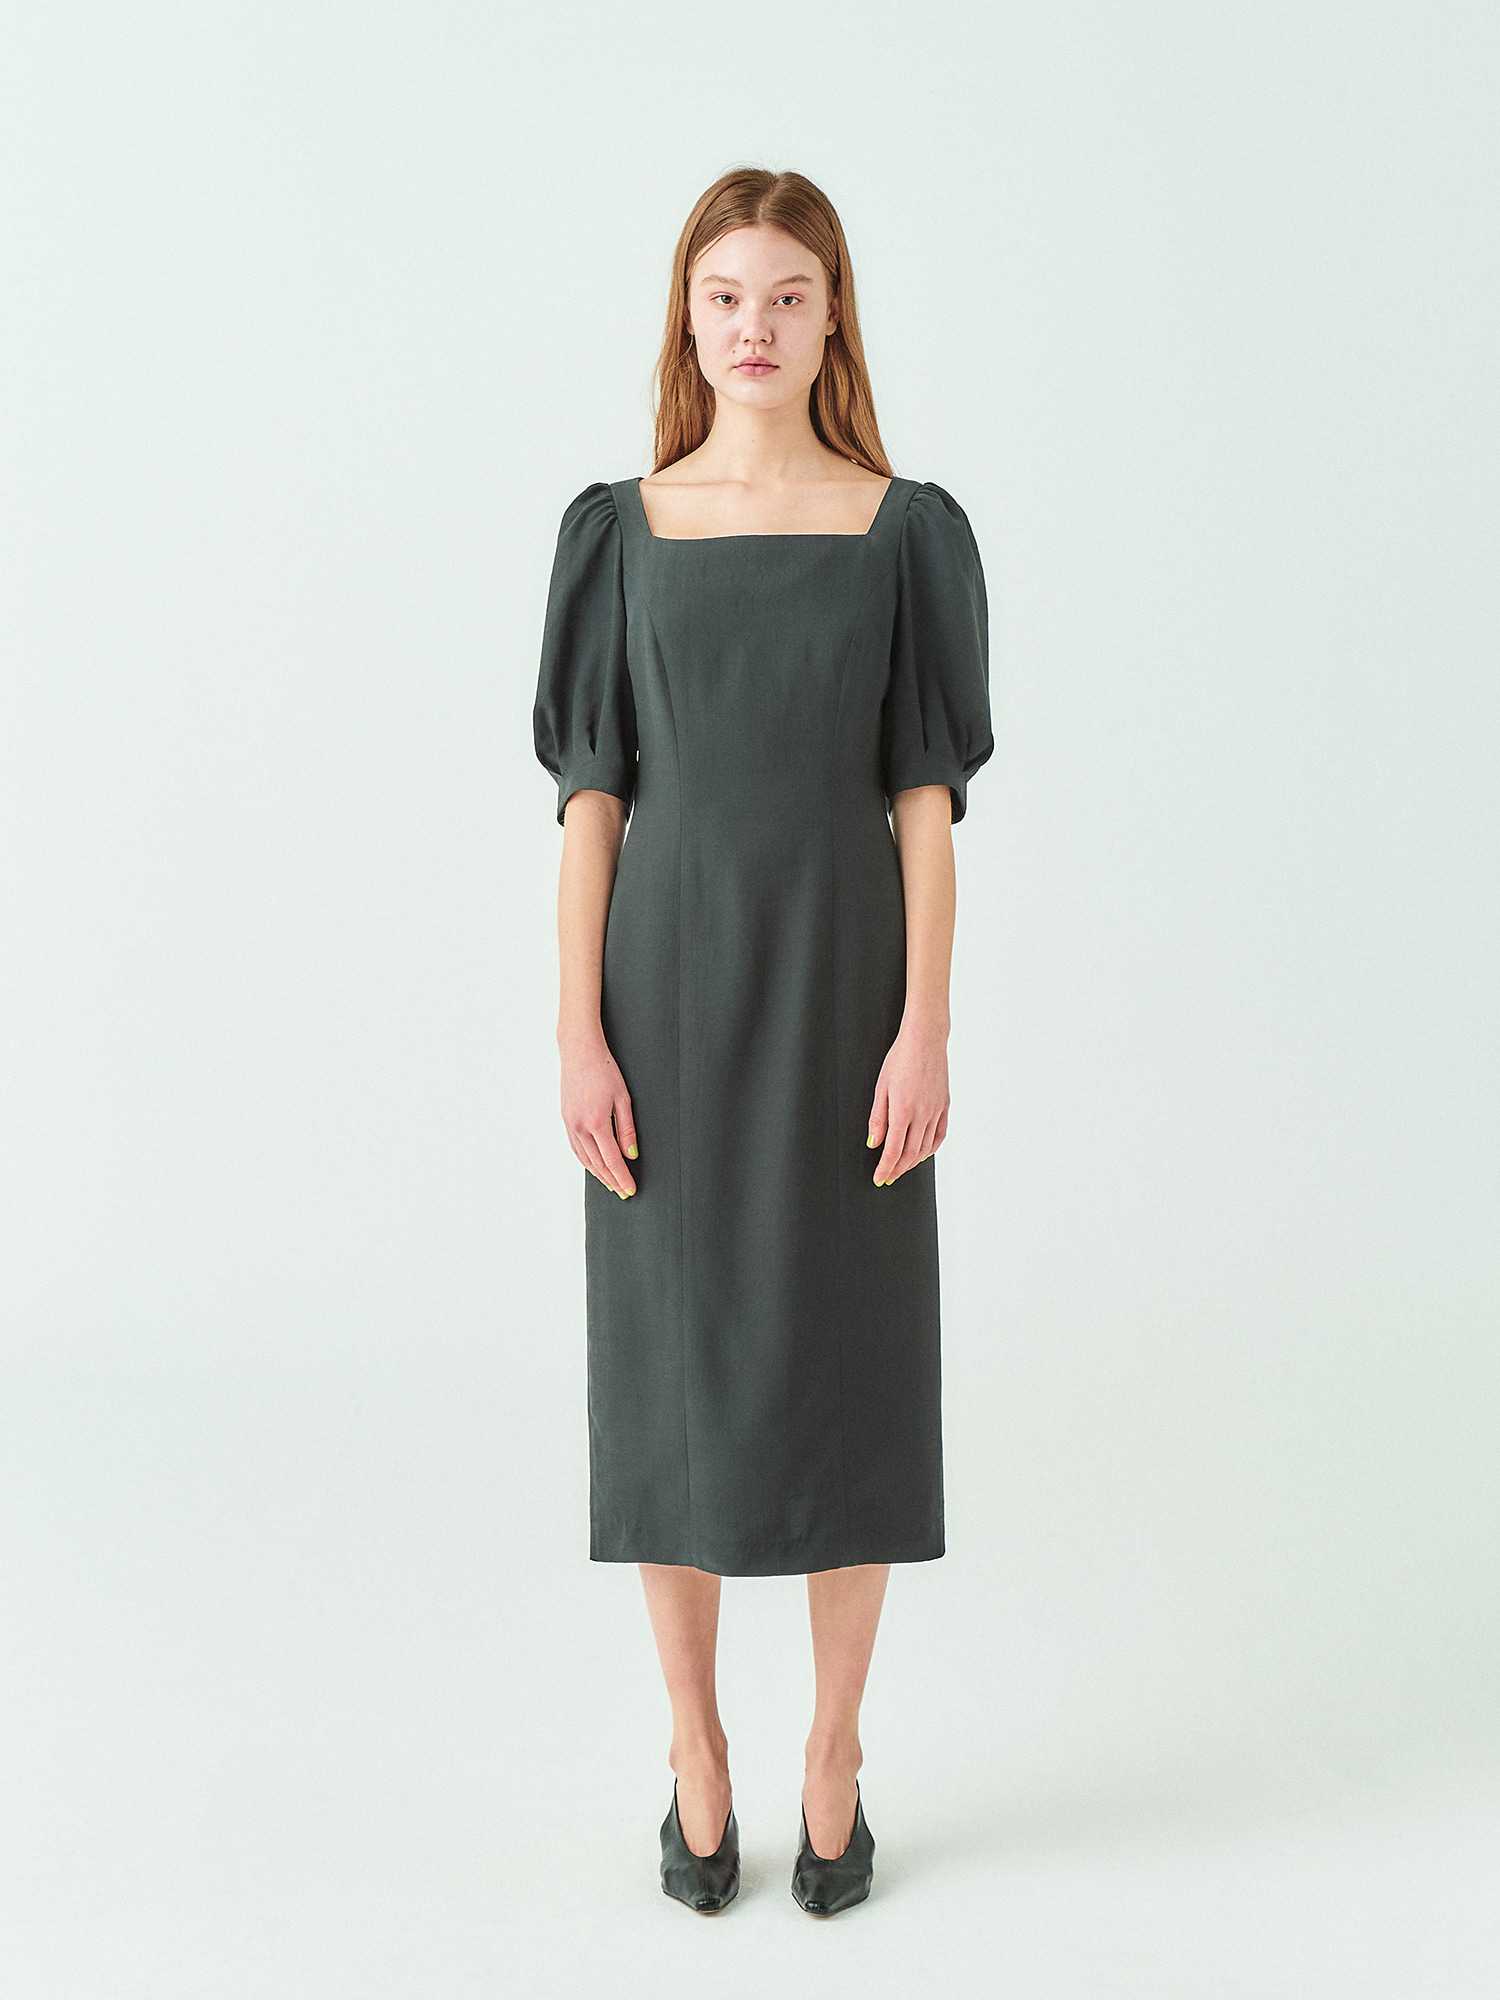 Square Neck Line Dress in Black